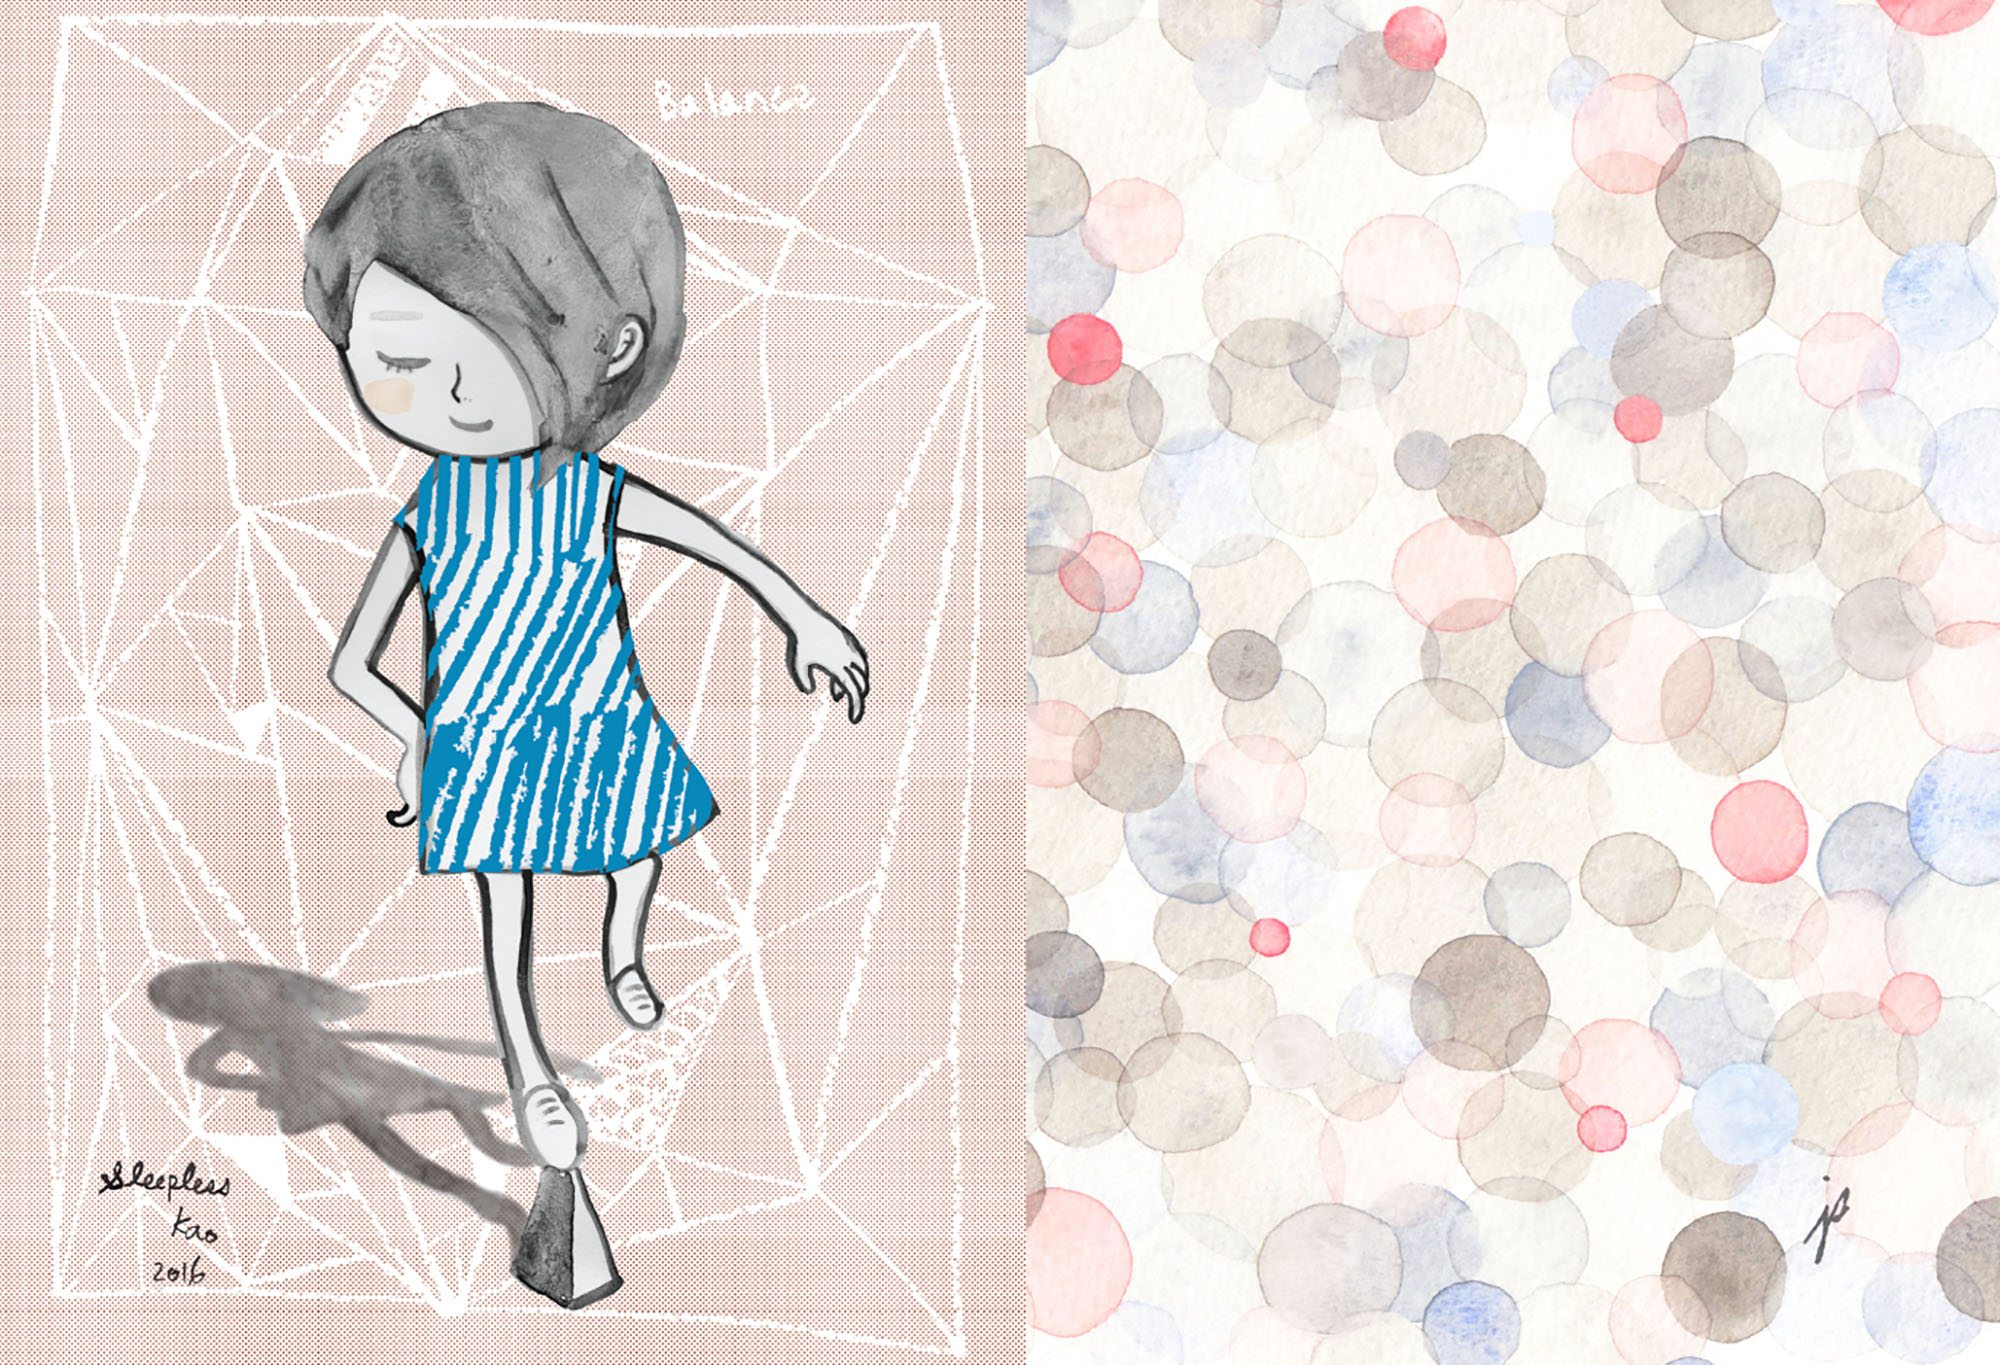 A work included in the Love Art exhibition (Sleepless Kao/Jodi Sam)